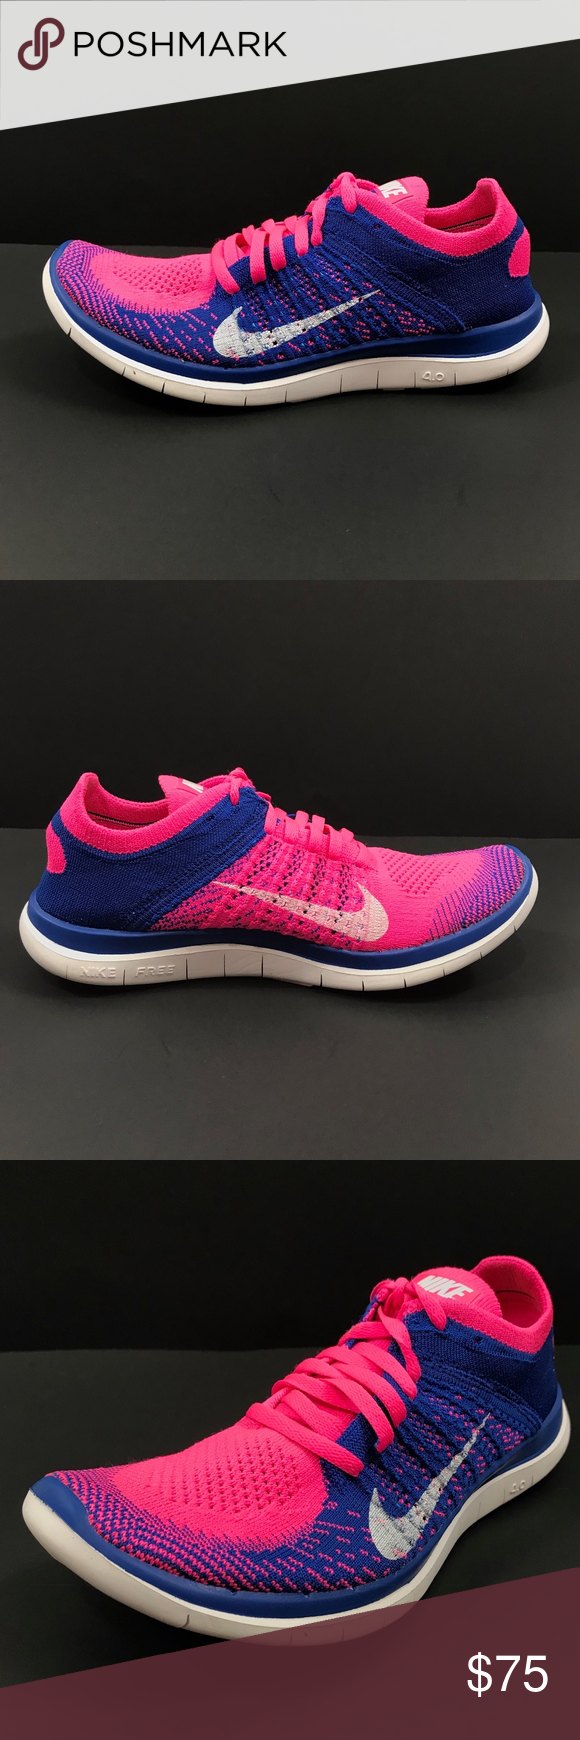 the best attitude ebe74 1f99d Nike WMNS Free 4.0 Flyknit Athletic Running Shoes Nike WMNS Free 4.0  Flyknit Running Shoes Pink